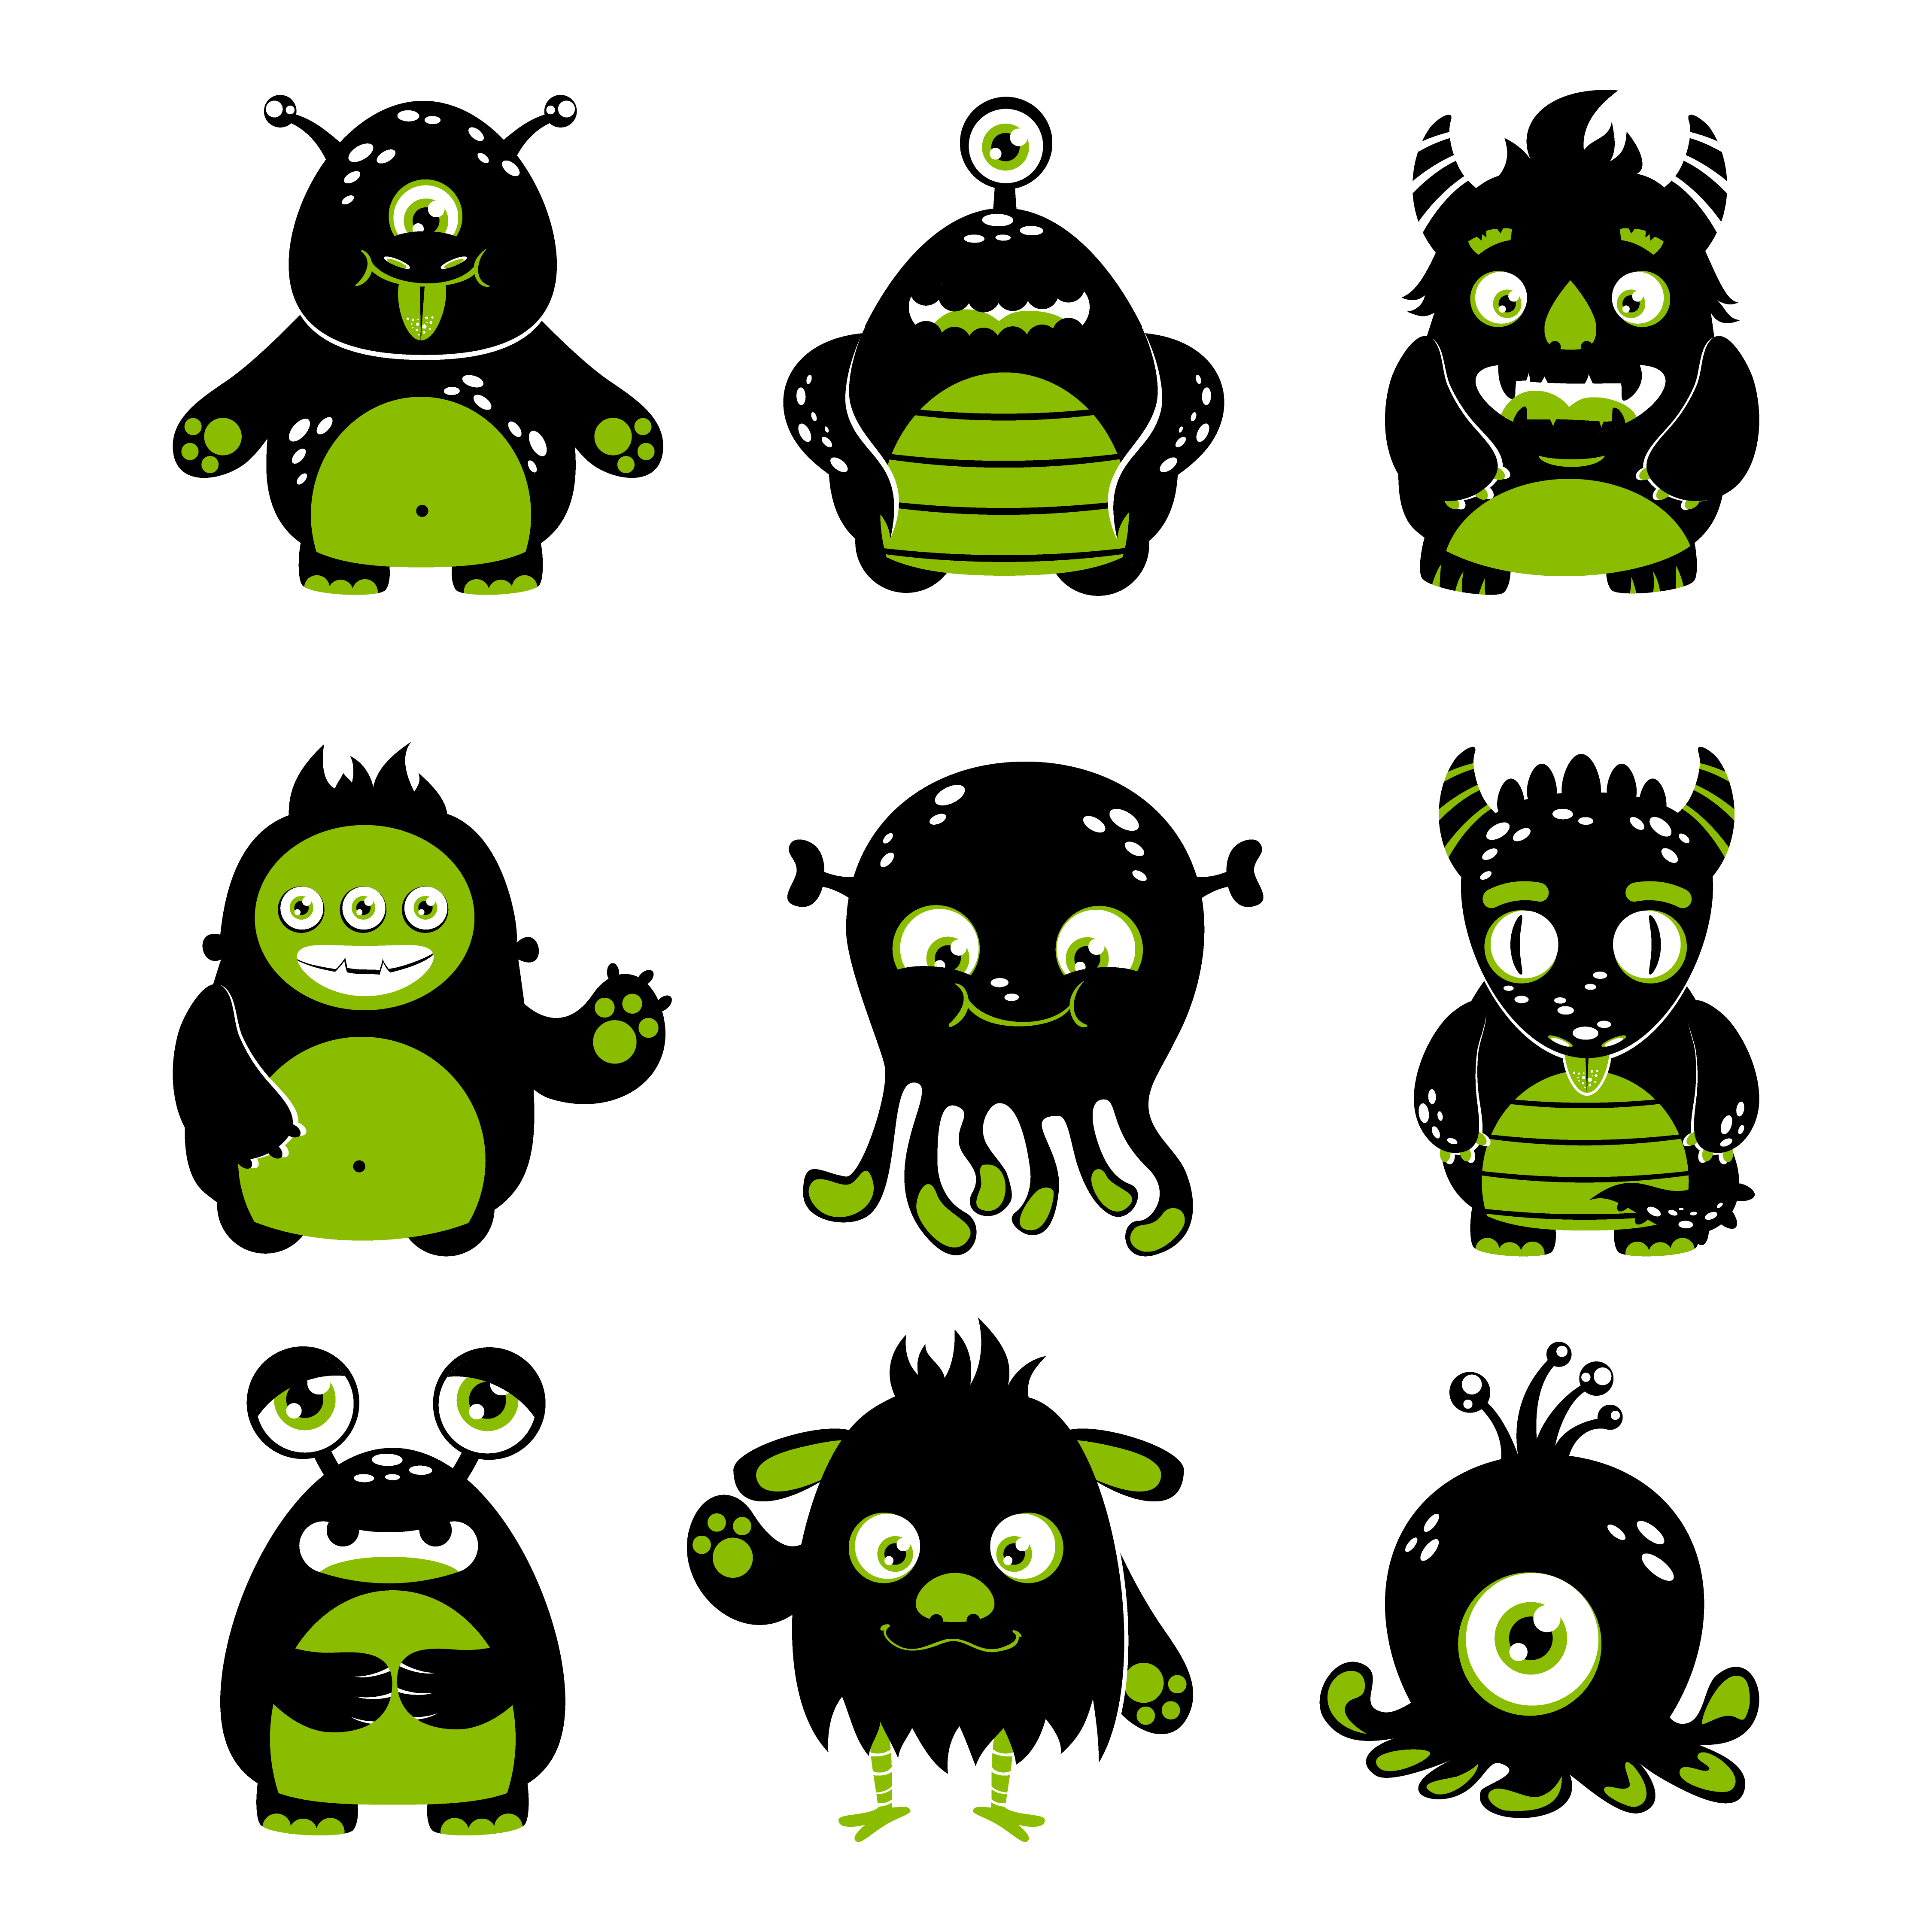 cute monsters vector cartoon funny alien illustration monster cat character premium clipart isolated silhouettes icons eyes tea graphics vectors fotosearch